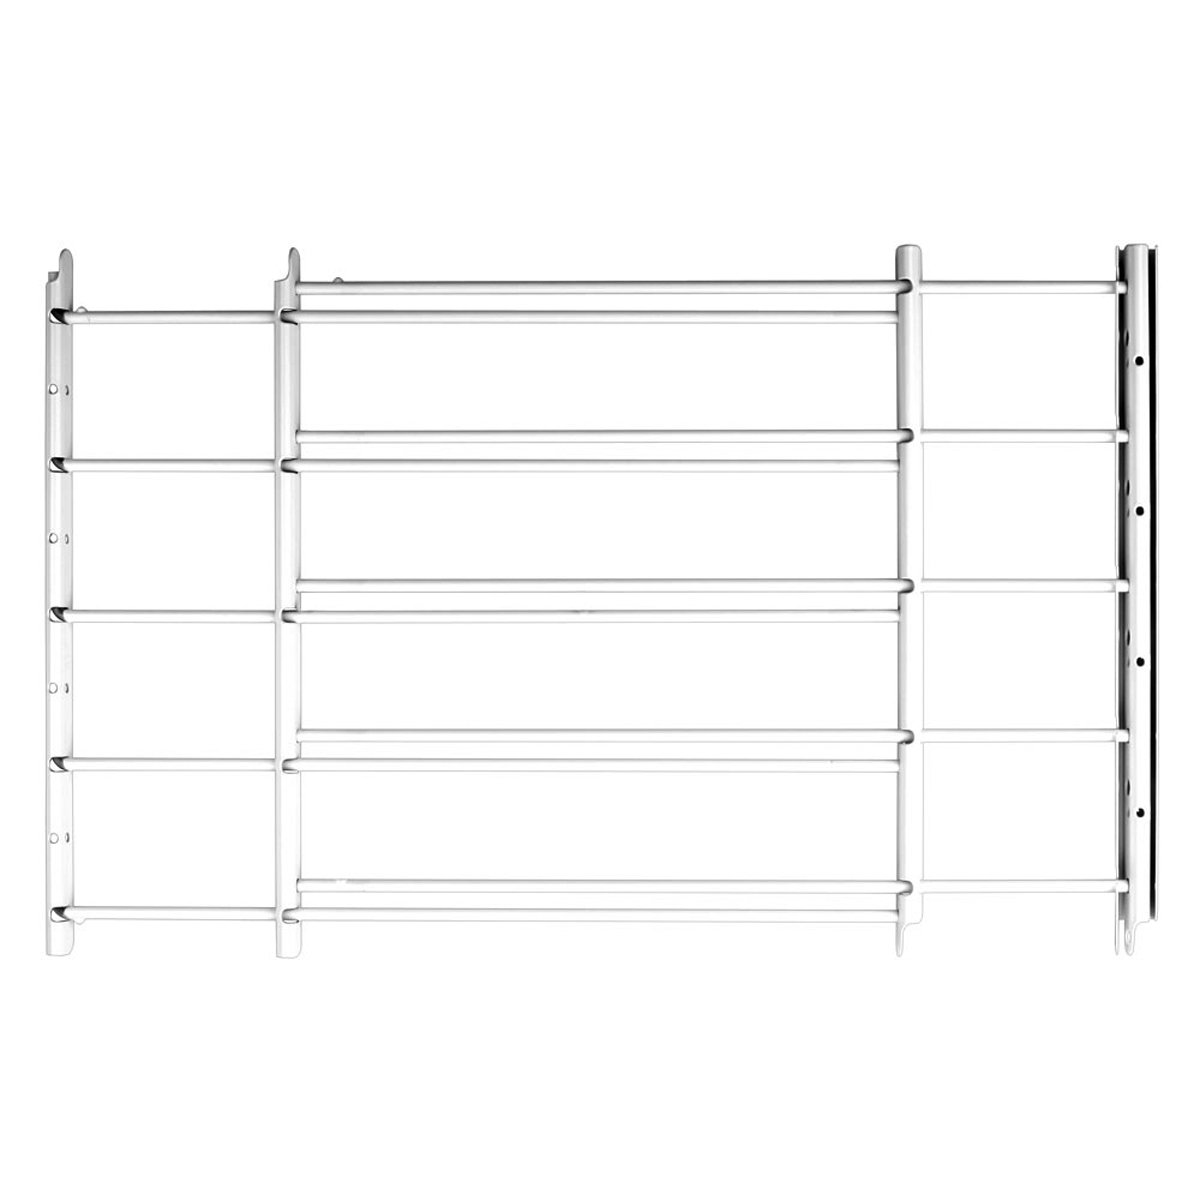 Knape & Vogt John Sterling Swing-Open Style 5-Bar Child Safety Window Guard, White, 1135-